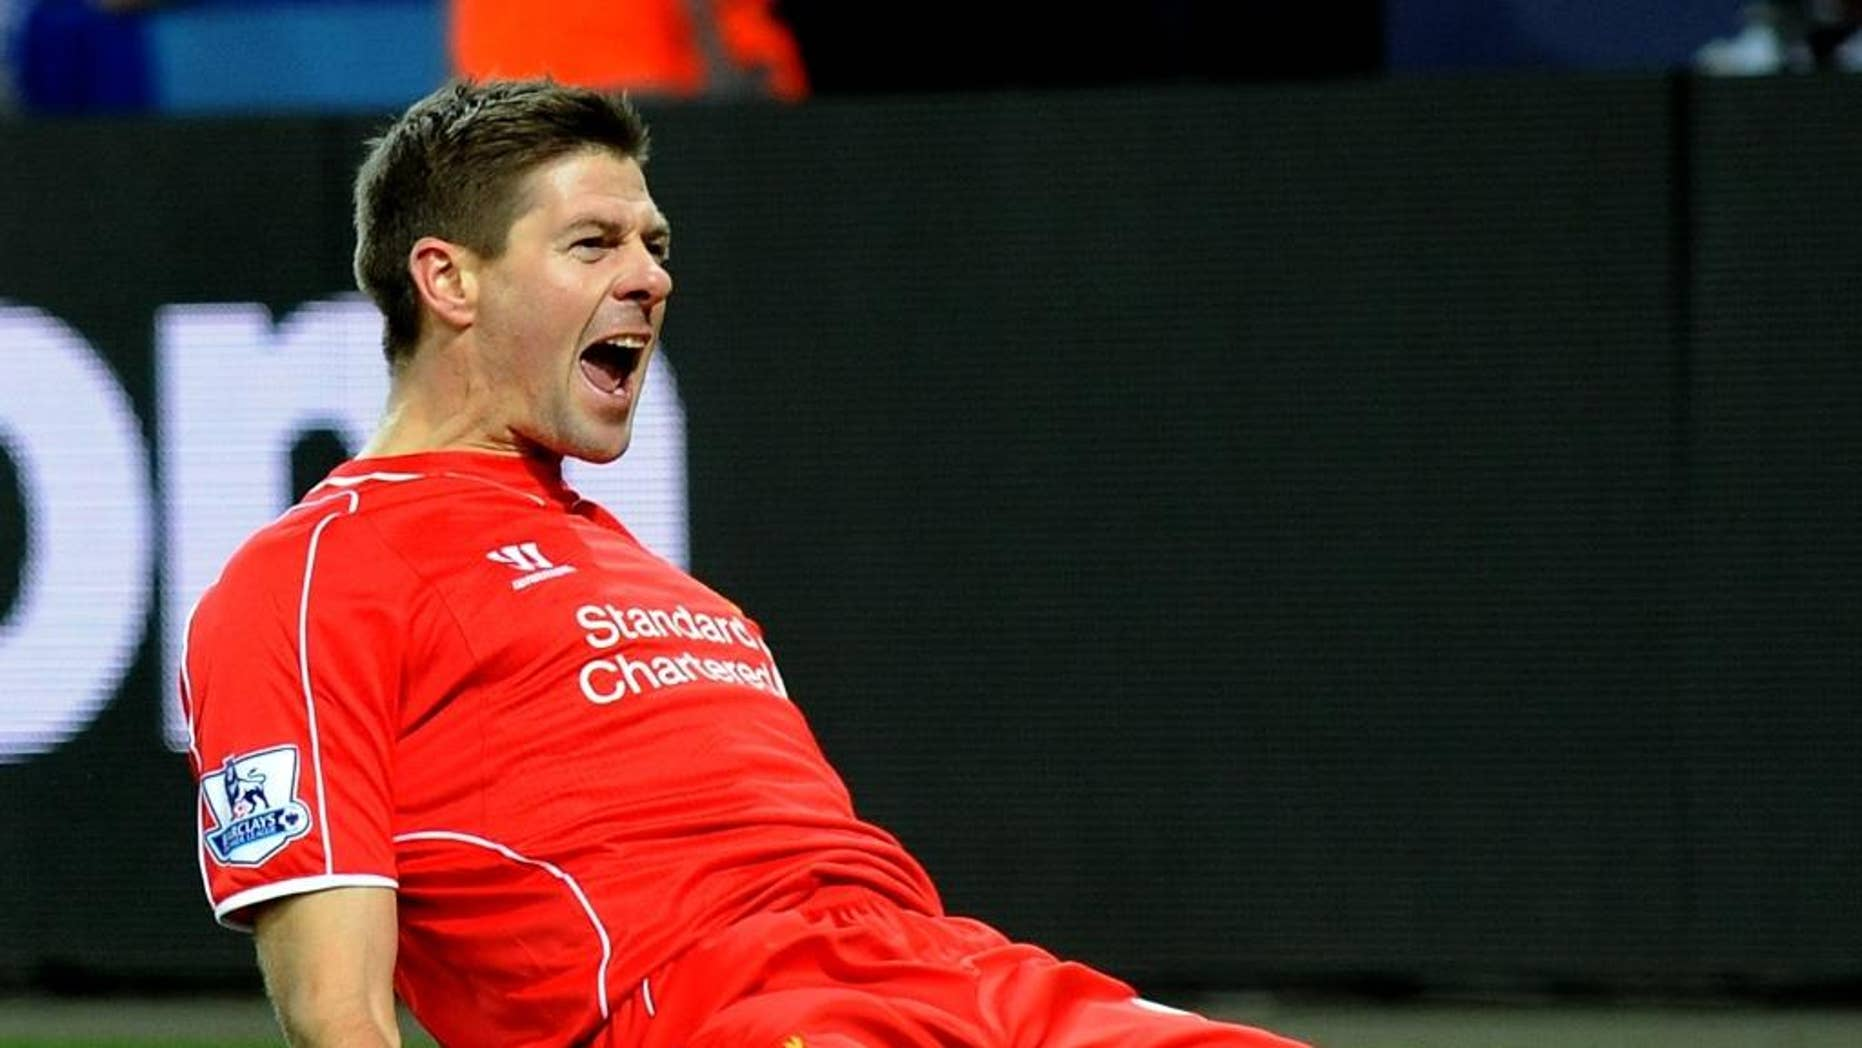 """FILE - In this Liverpool's Tuesday, Dec. 2, 2014 file photo, Steven Gerrard celebrates scoring against Leicester during the English Premier League soccer match between Leicester City and Liverpool at King Power Stadium, in Leicester, England. Gerrard, the former Liverpool and England captain, announced his retirement from professional soccer on Thursday, Nov. 24, 2016 and said he is considering a """"number of options"""" about his next career move. (AP Photo/Rui Vieira, File)"""